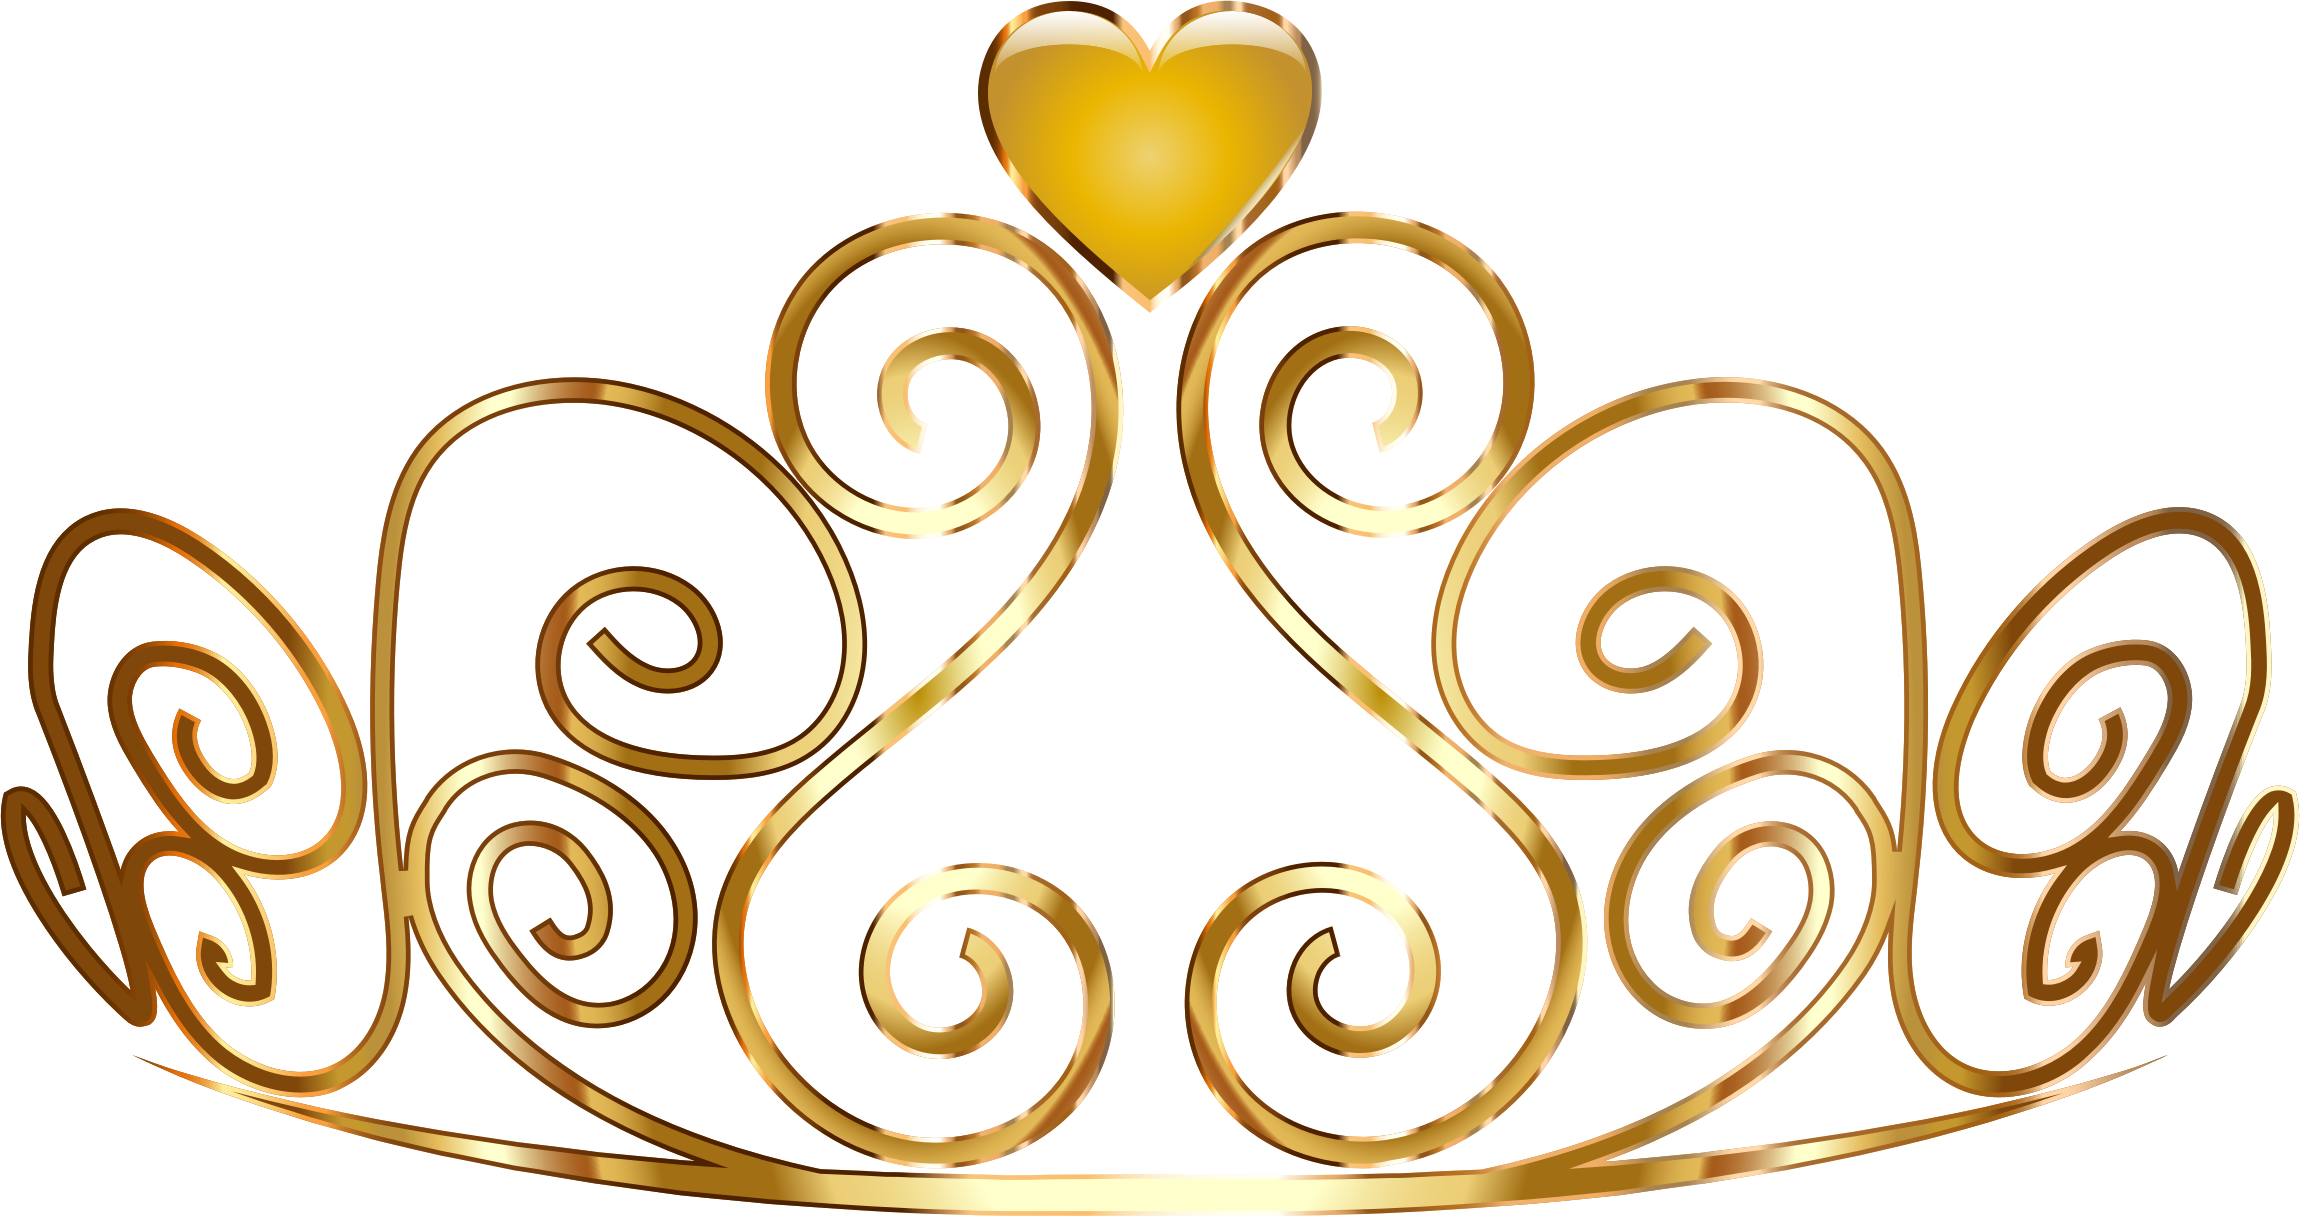 Gold tiara clipart clipart images gallery for free download.